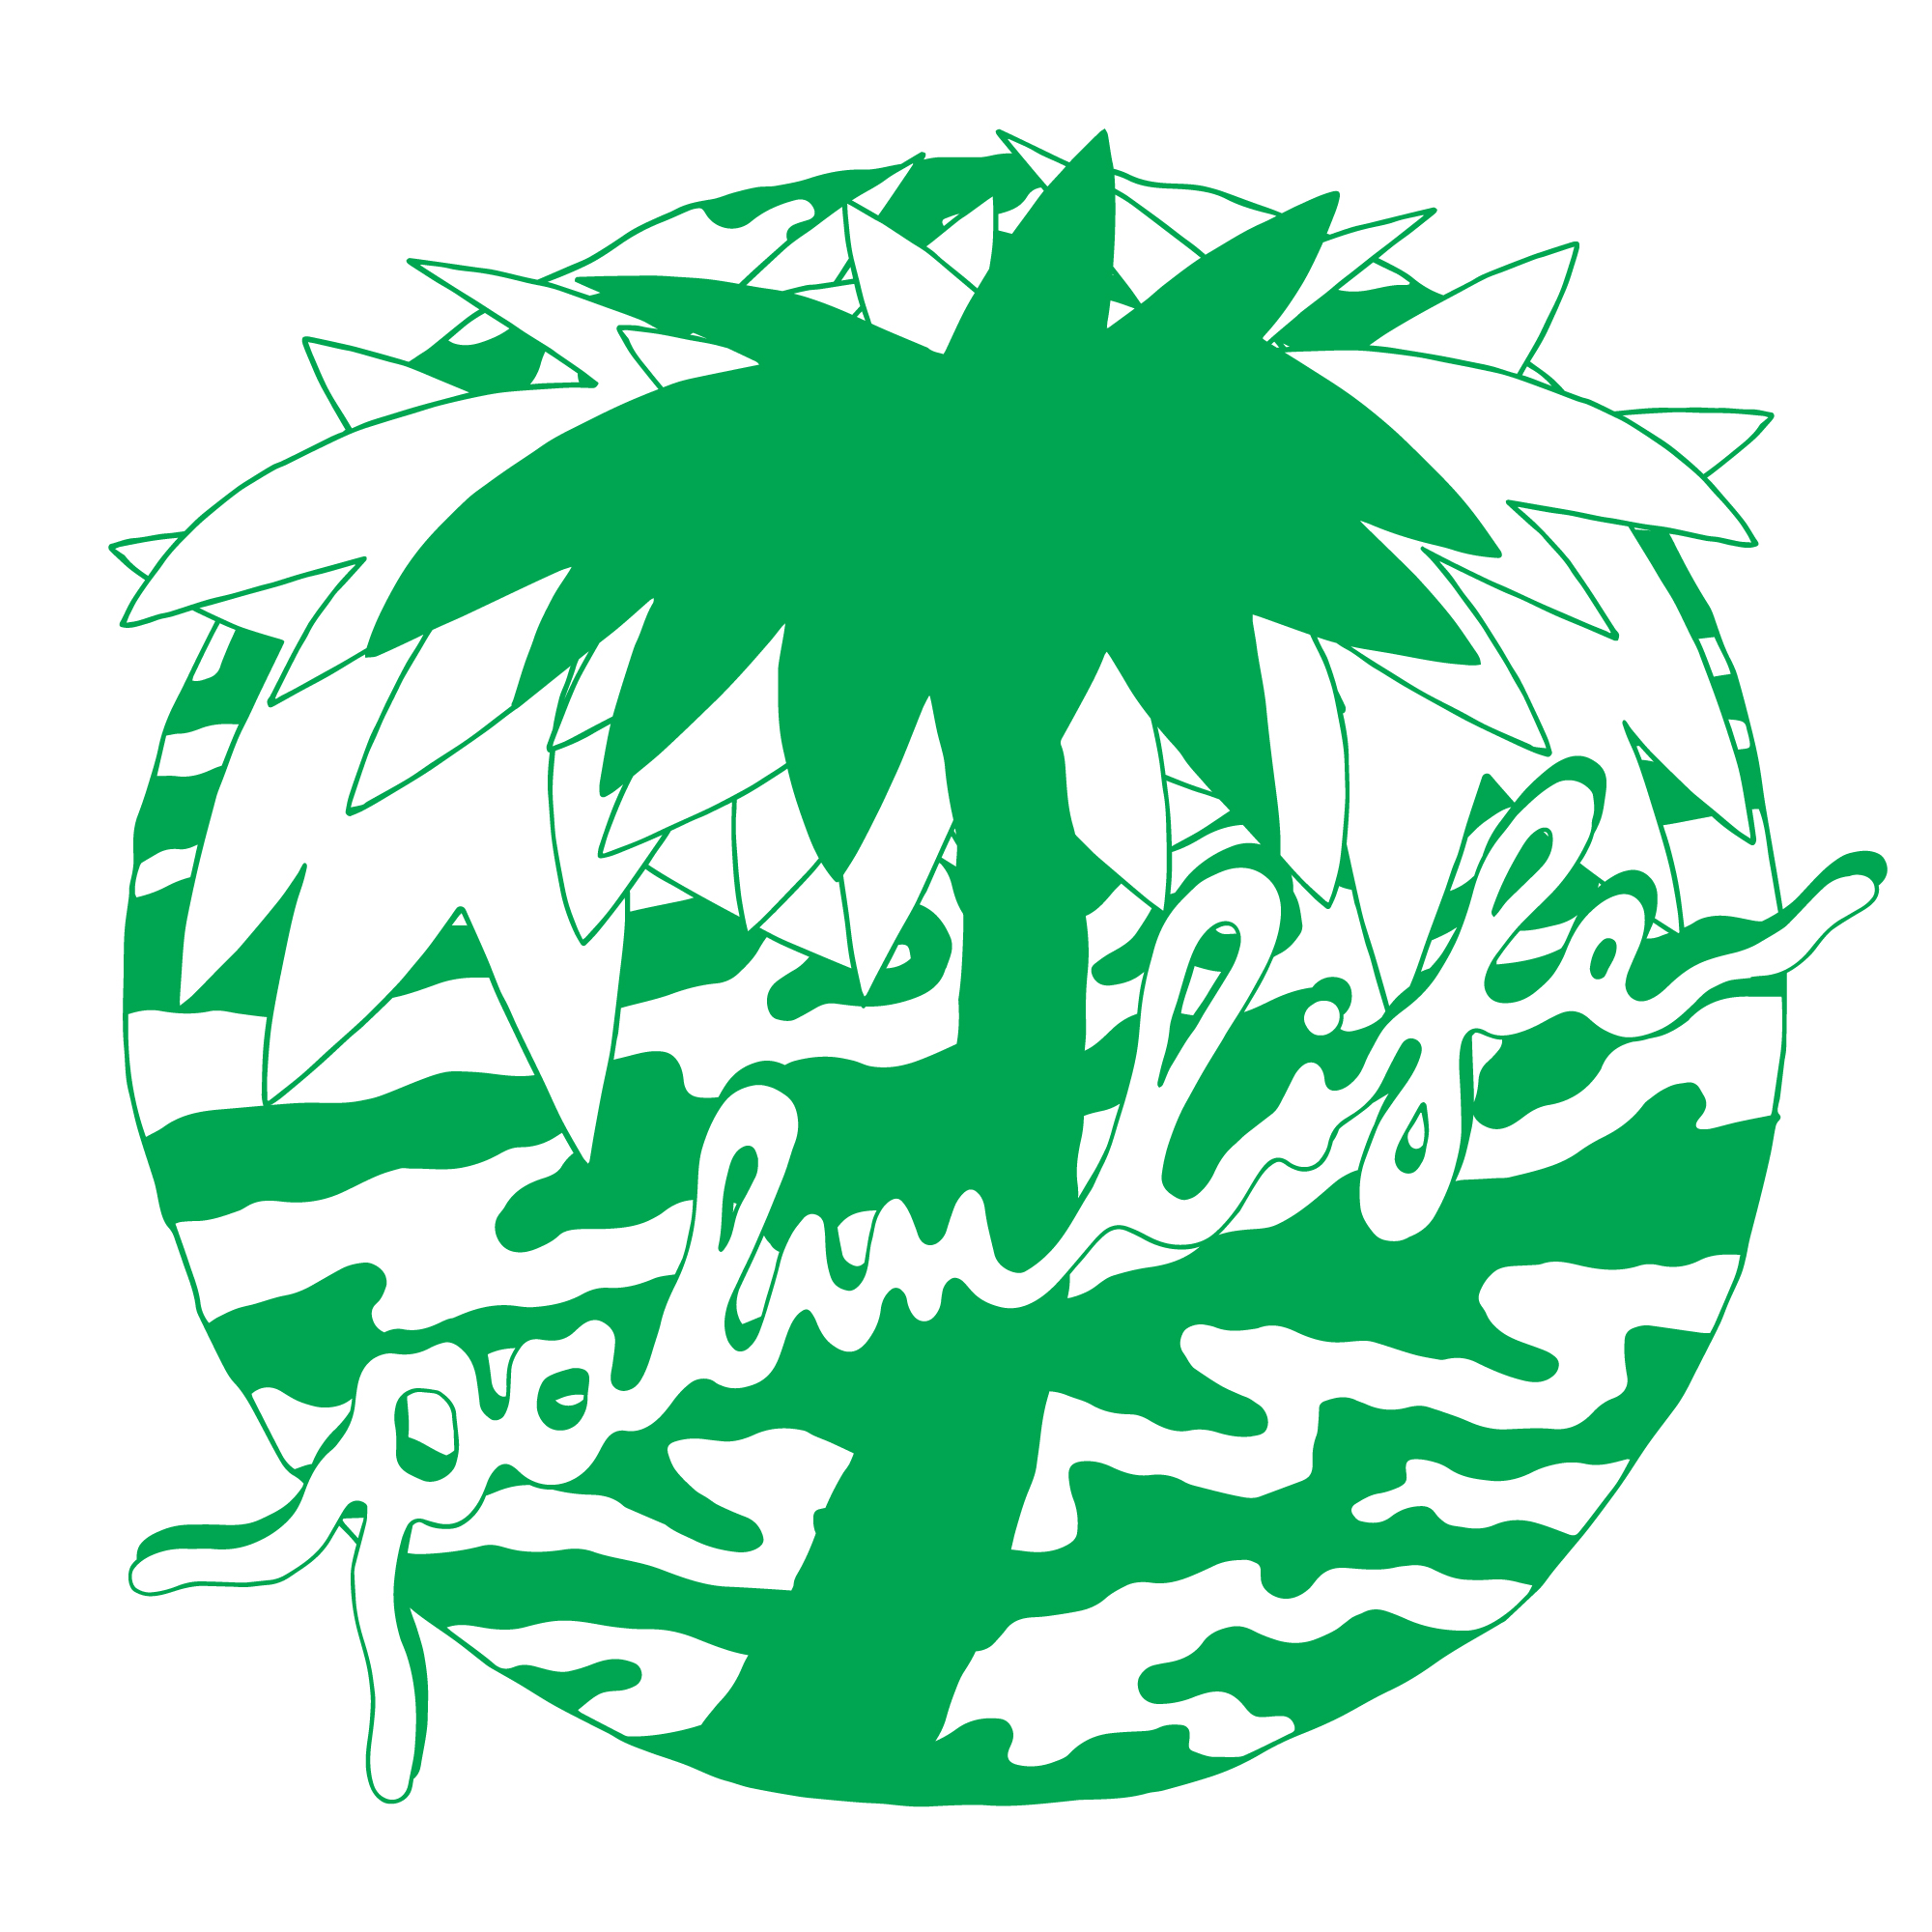 Palmlife (2016), Logo design.